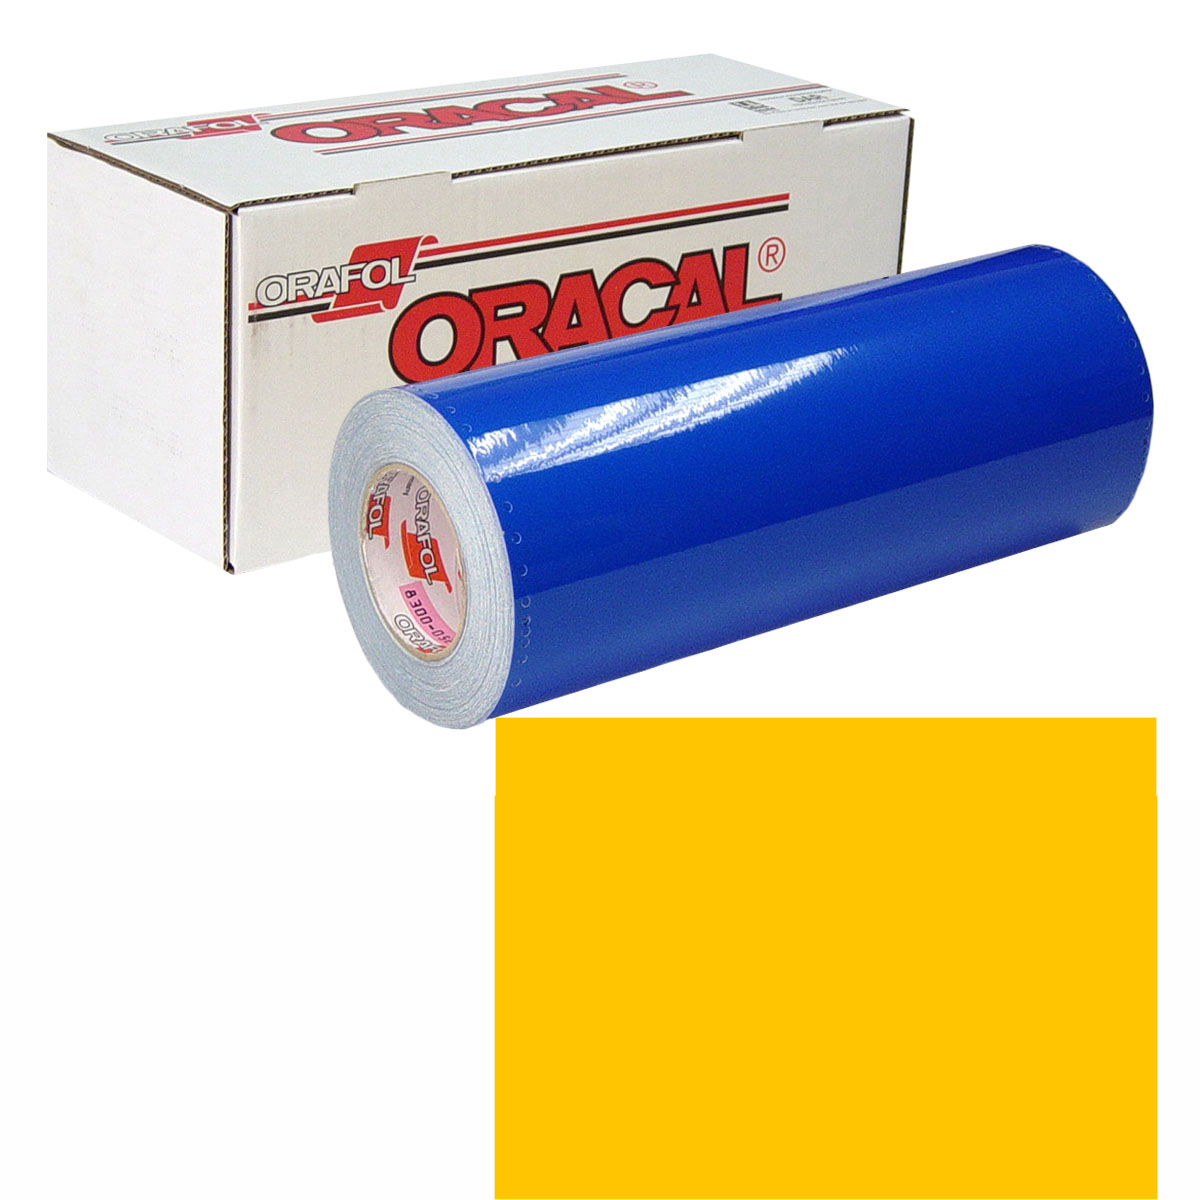 ORACAL 631 Unp 30in X 10yd 021 Yellow